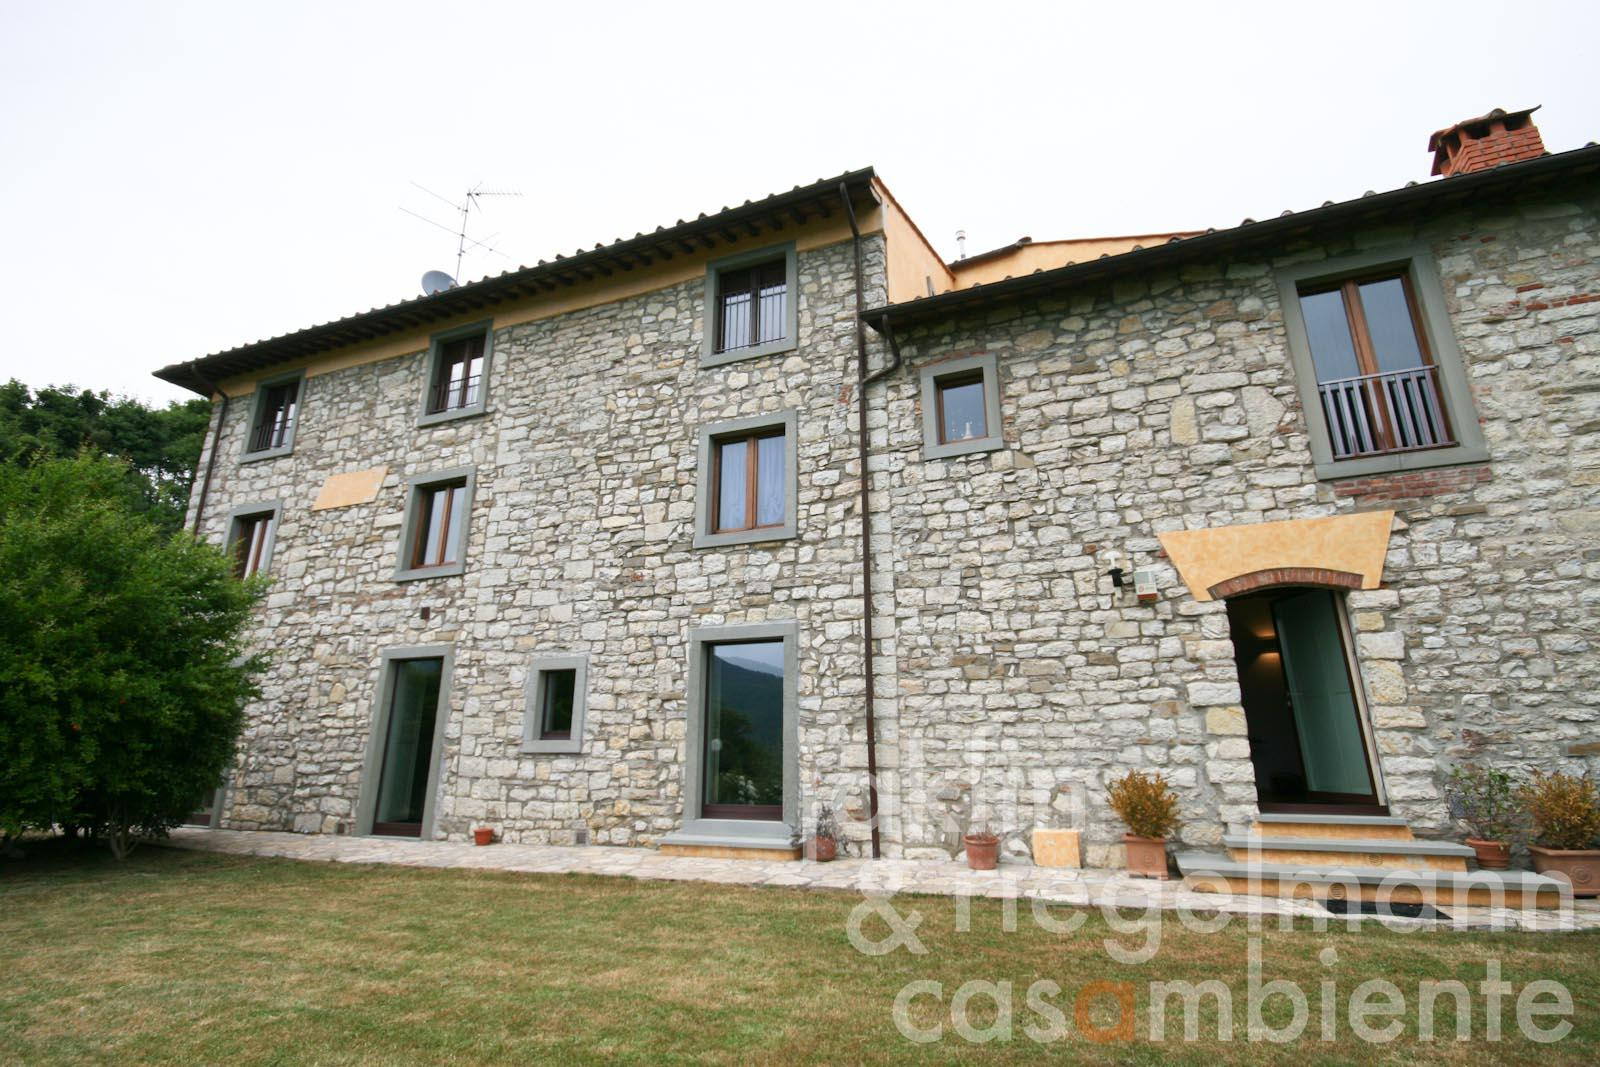 The modern and beautifully restored apartment for sale with private garden close to Florence in Tuscany